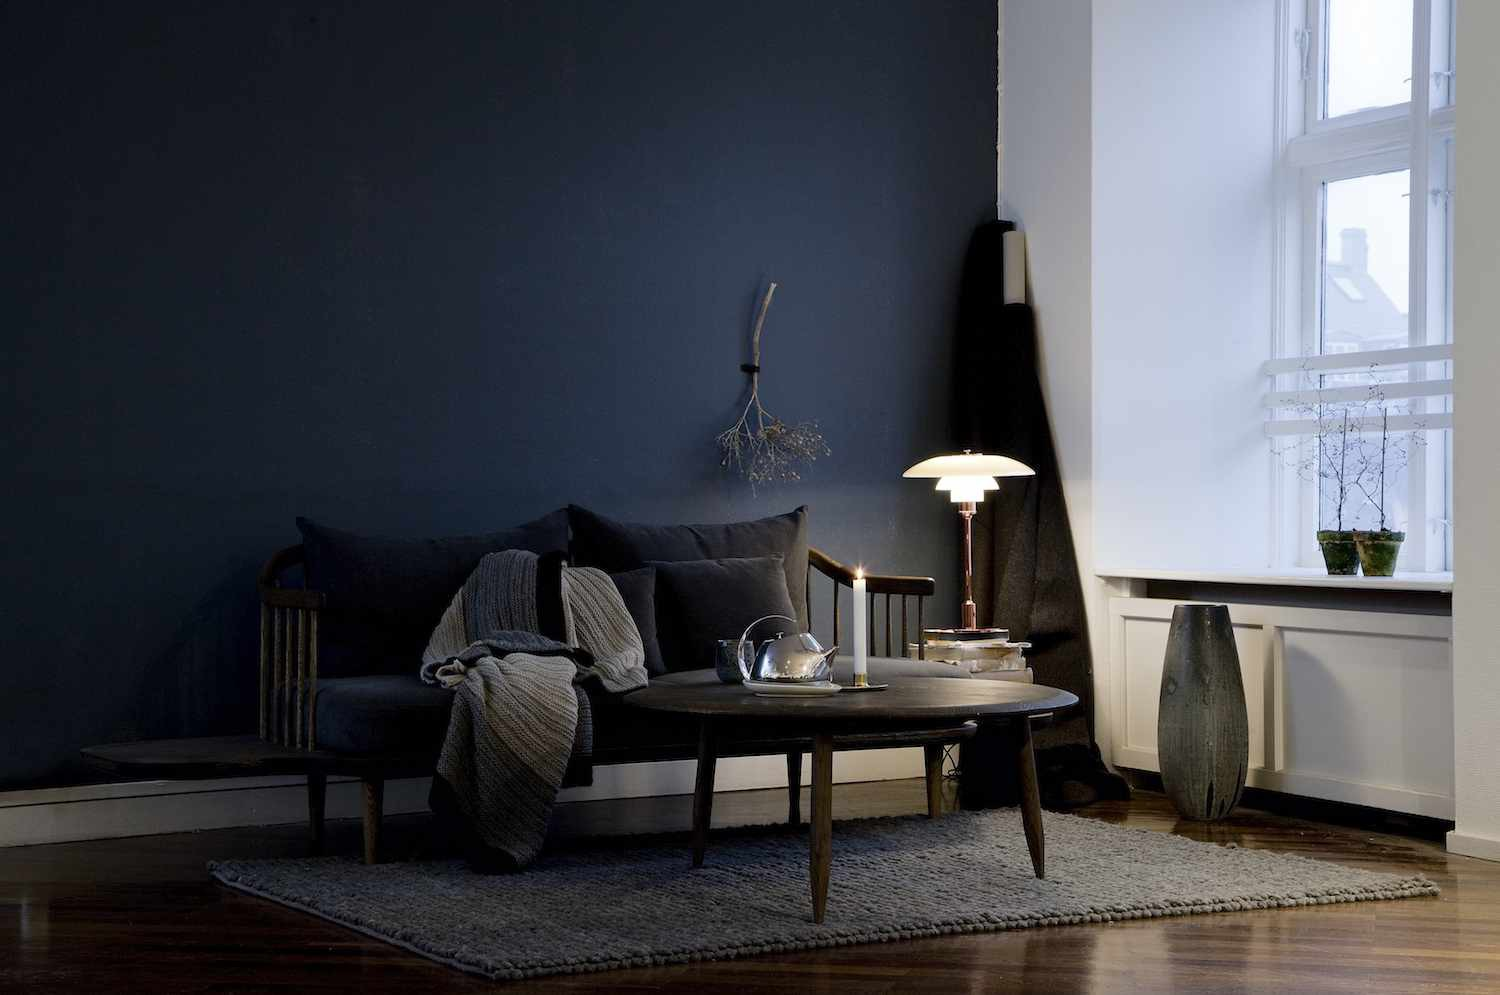 louis poulsen ph 3 2 kupfer tischleuchte limitedt edition designs2love. Black Bedroom Furniture Sets. Home Design Ideas